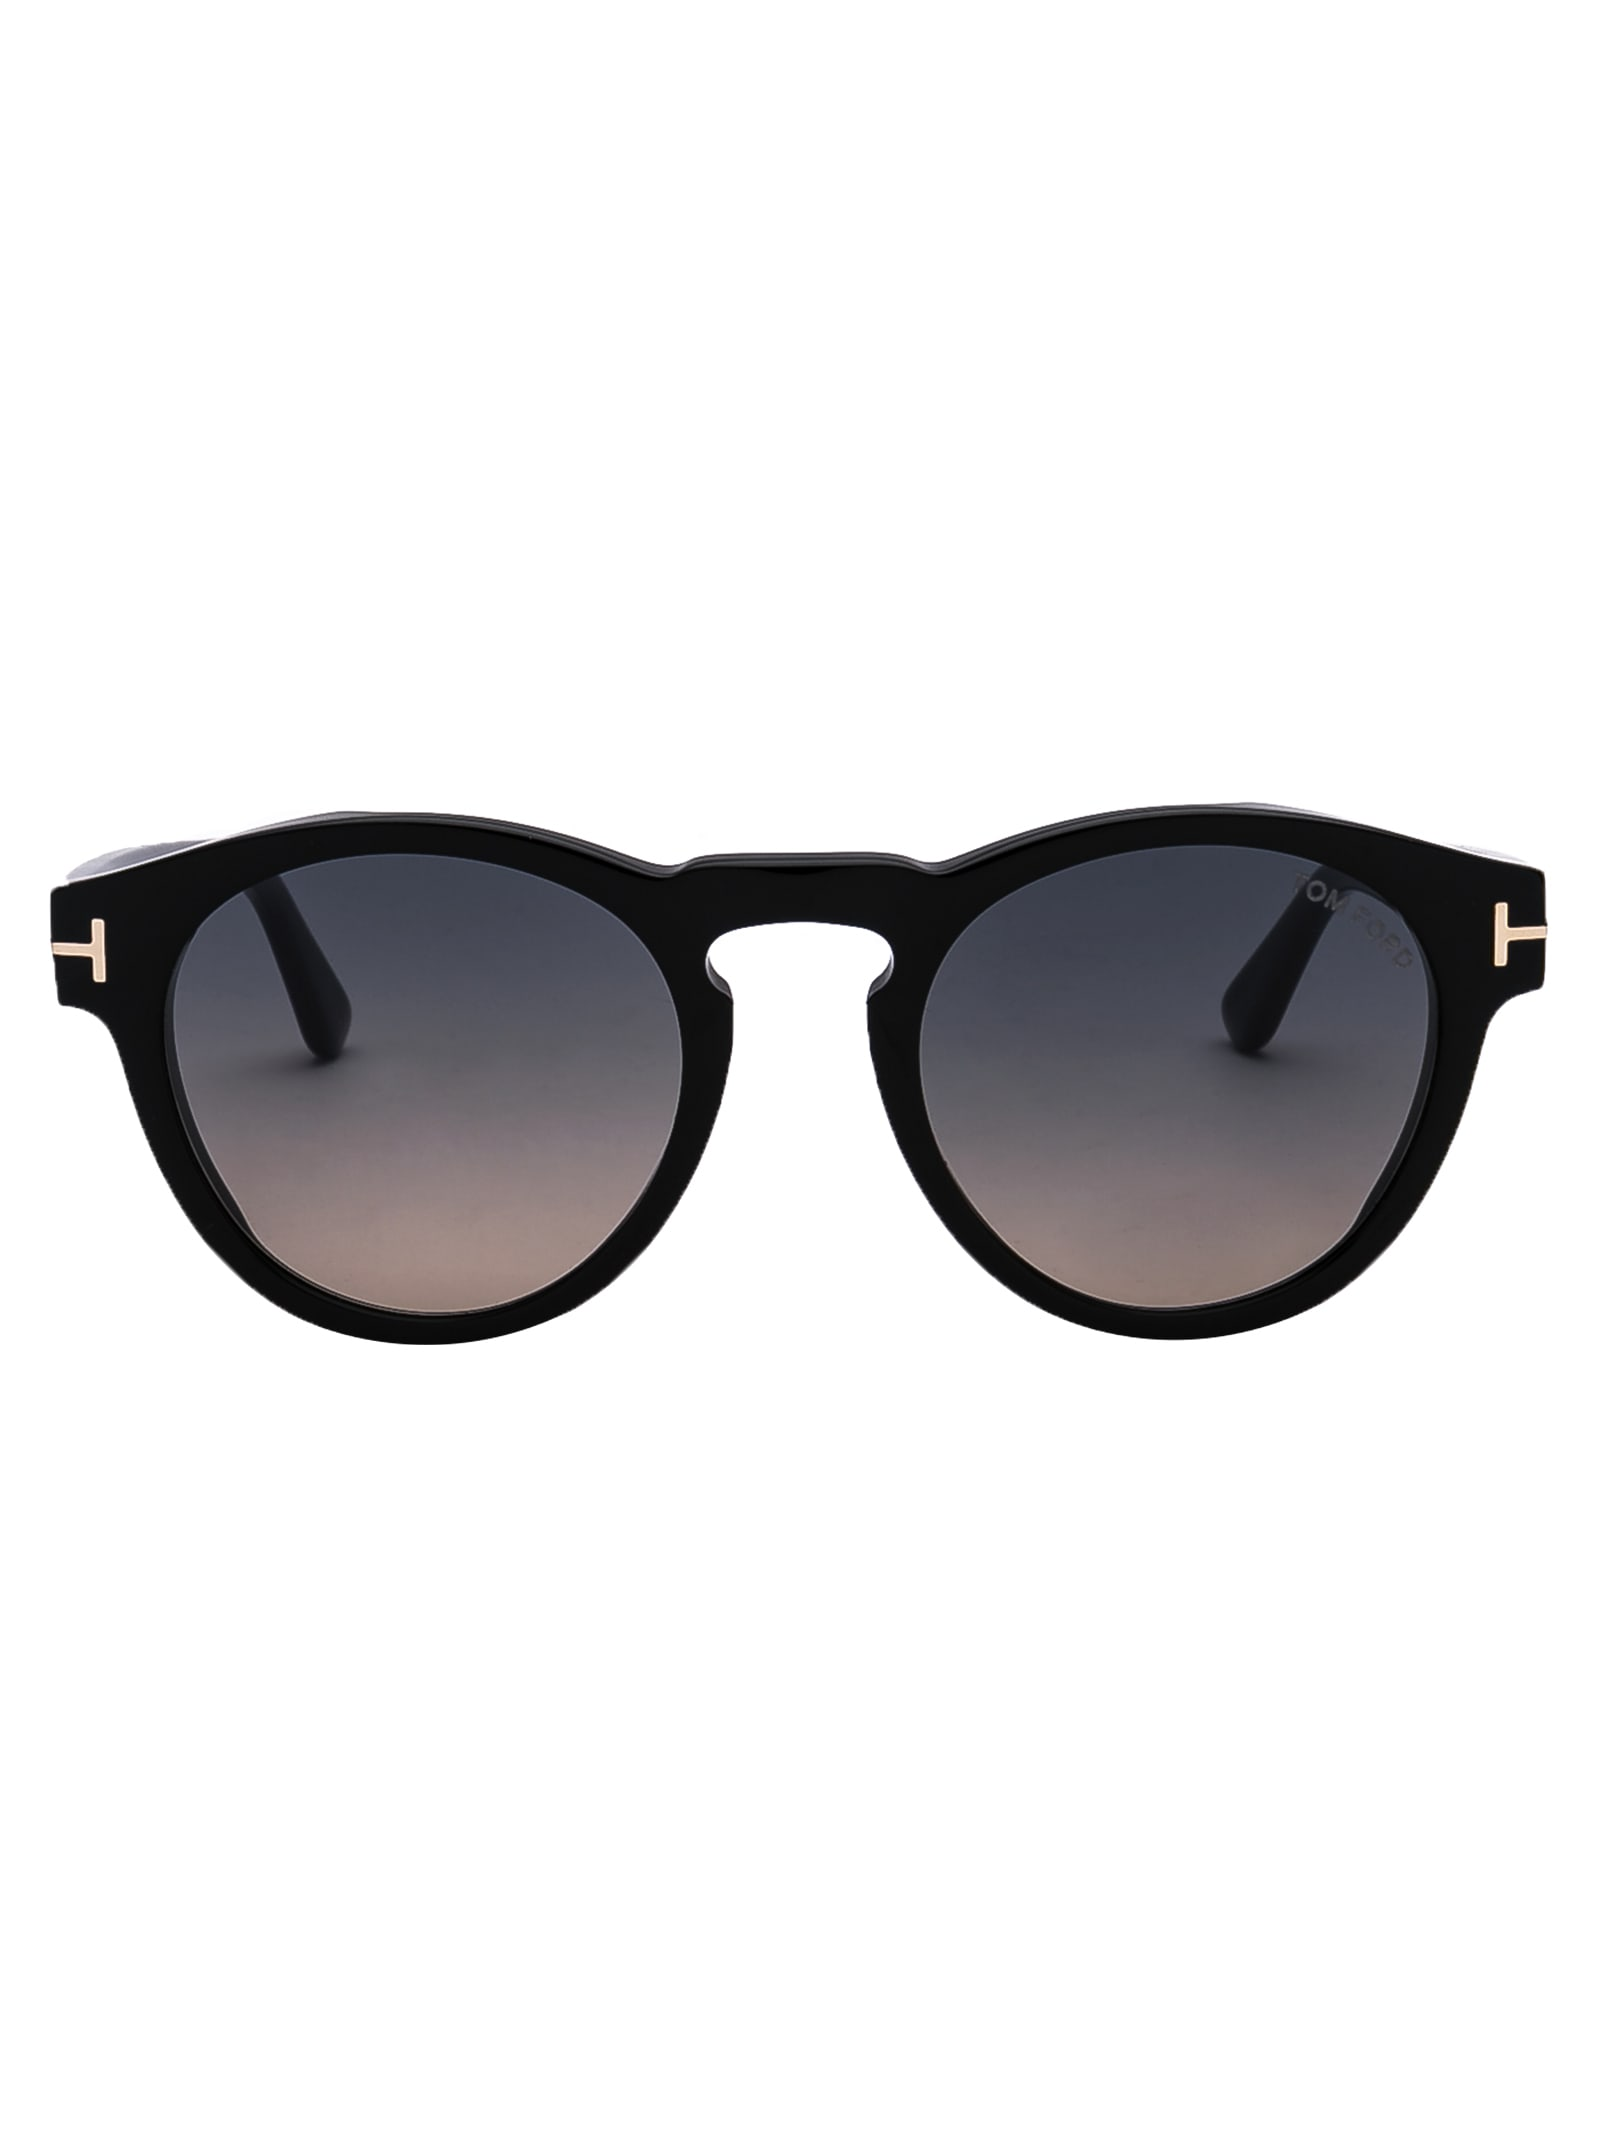 Tom Ford Sunglasses SUNGLASSES